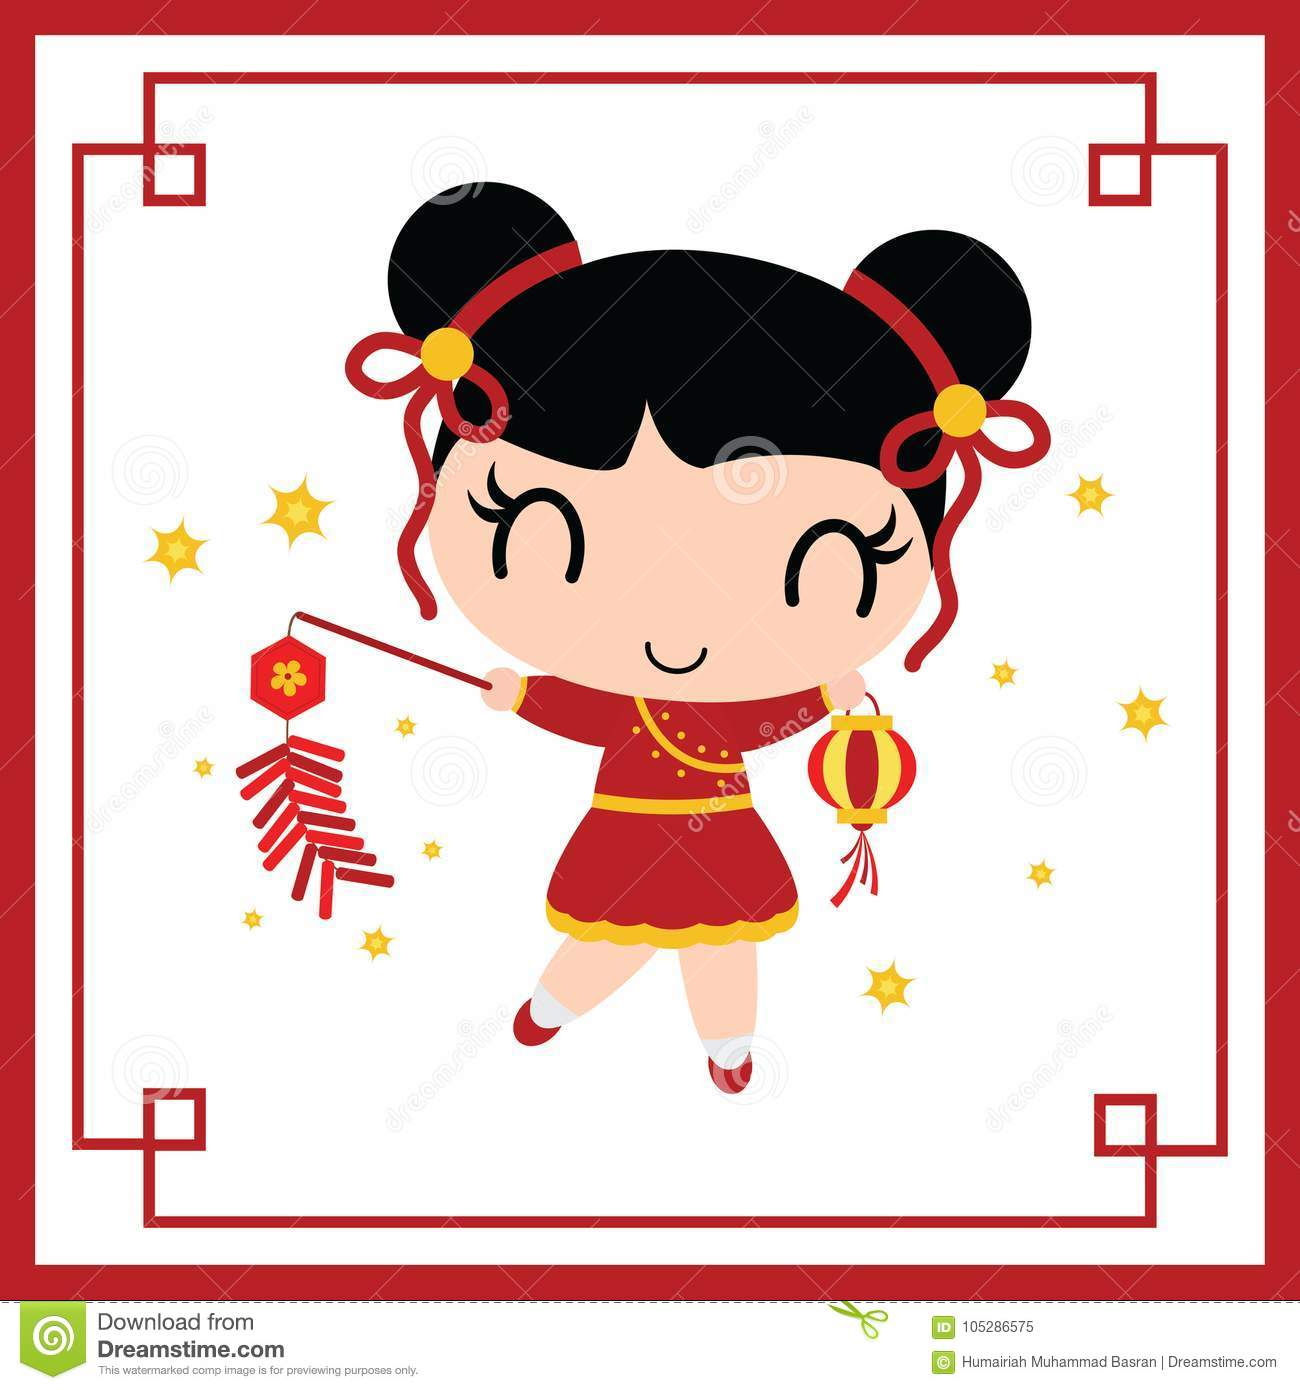 Cute Chinese Girl Plays Firecrackers Cartoon Illustration For Chinese New Year Card Design Stock Vector Illustration Of Banner Cartoon 105286575